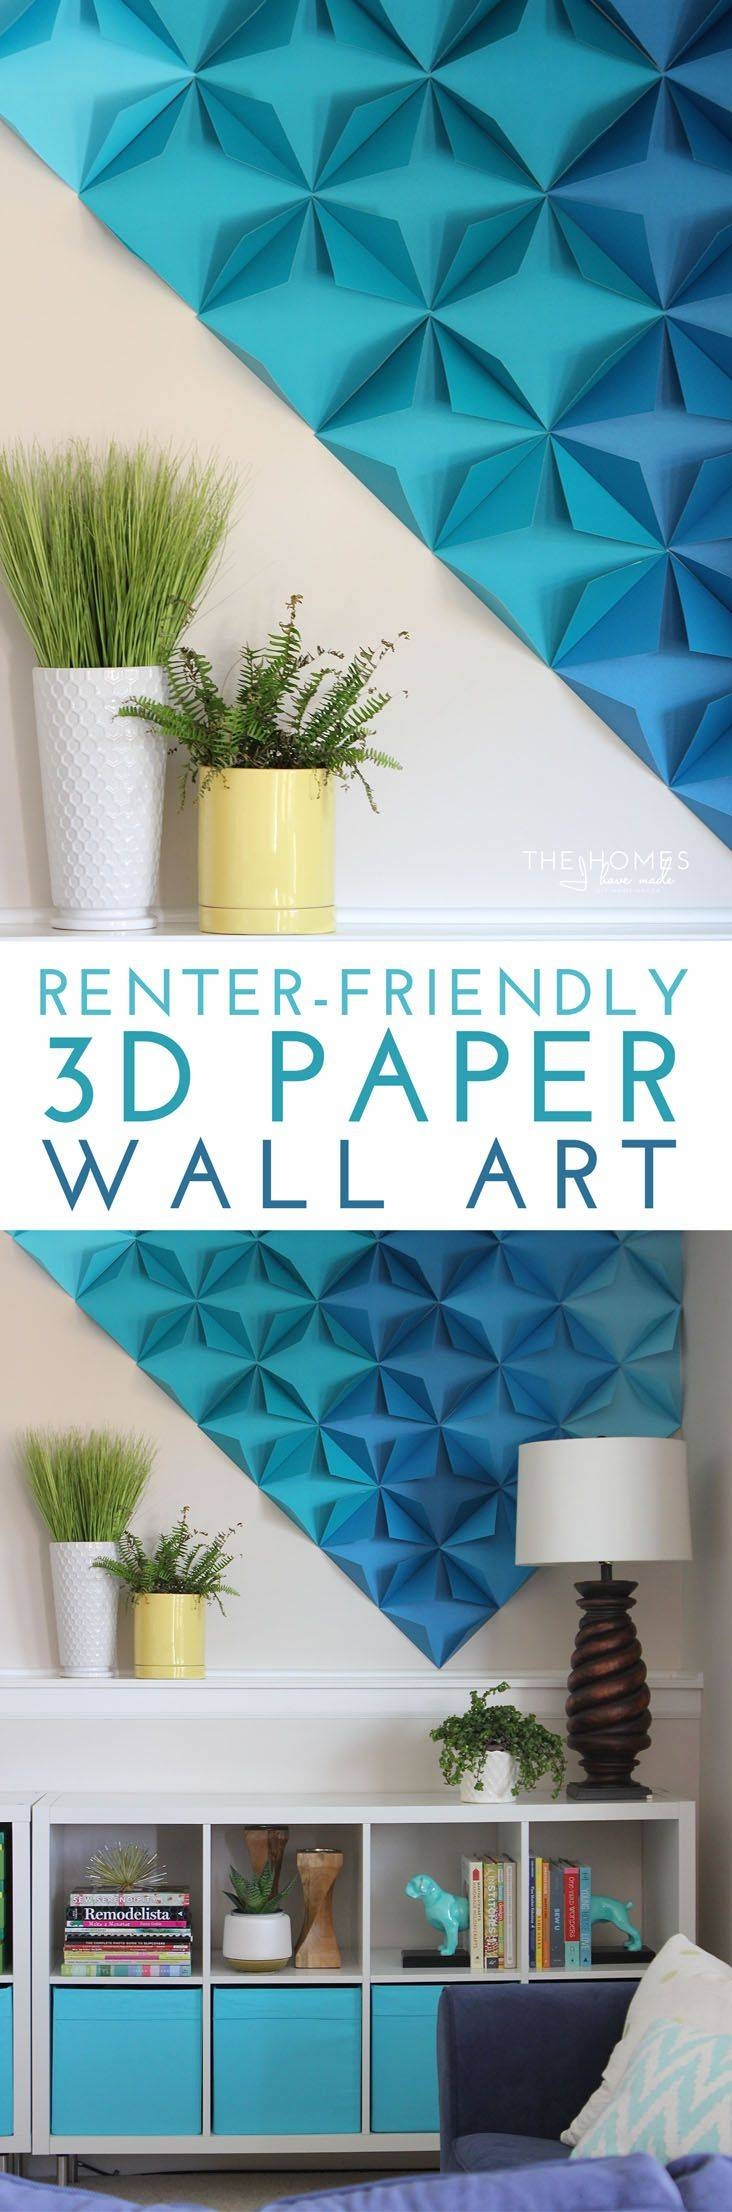 25+ Unique 3d Wall Art Ideas On Pinterest | Butterfly Wall, Diy Intended For Best And Newest 3d Little Brown Pony Wall Art Decor (View 13 of 20)